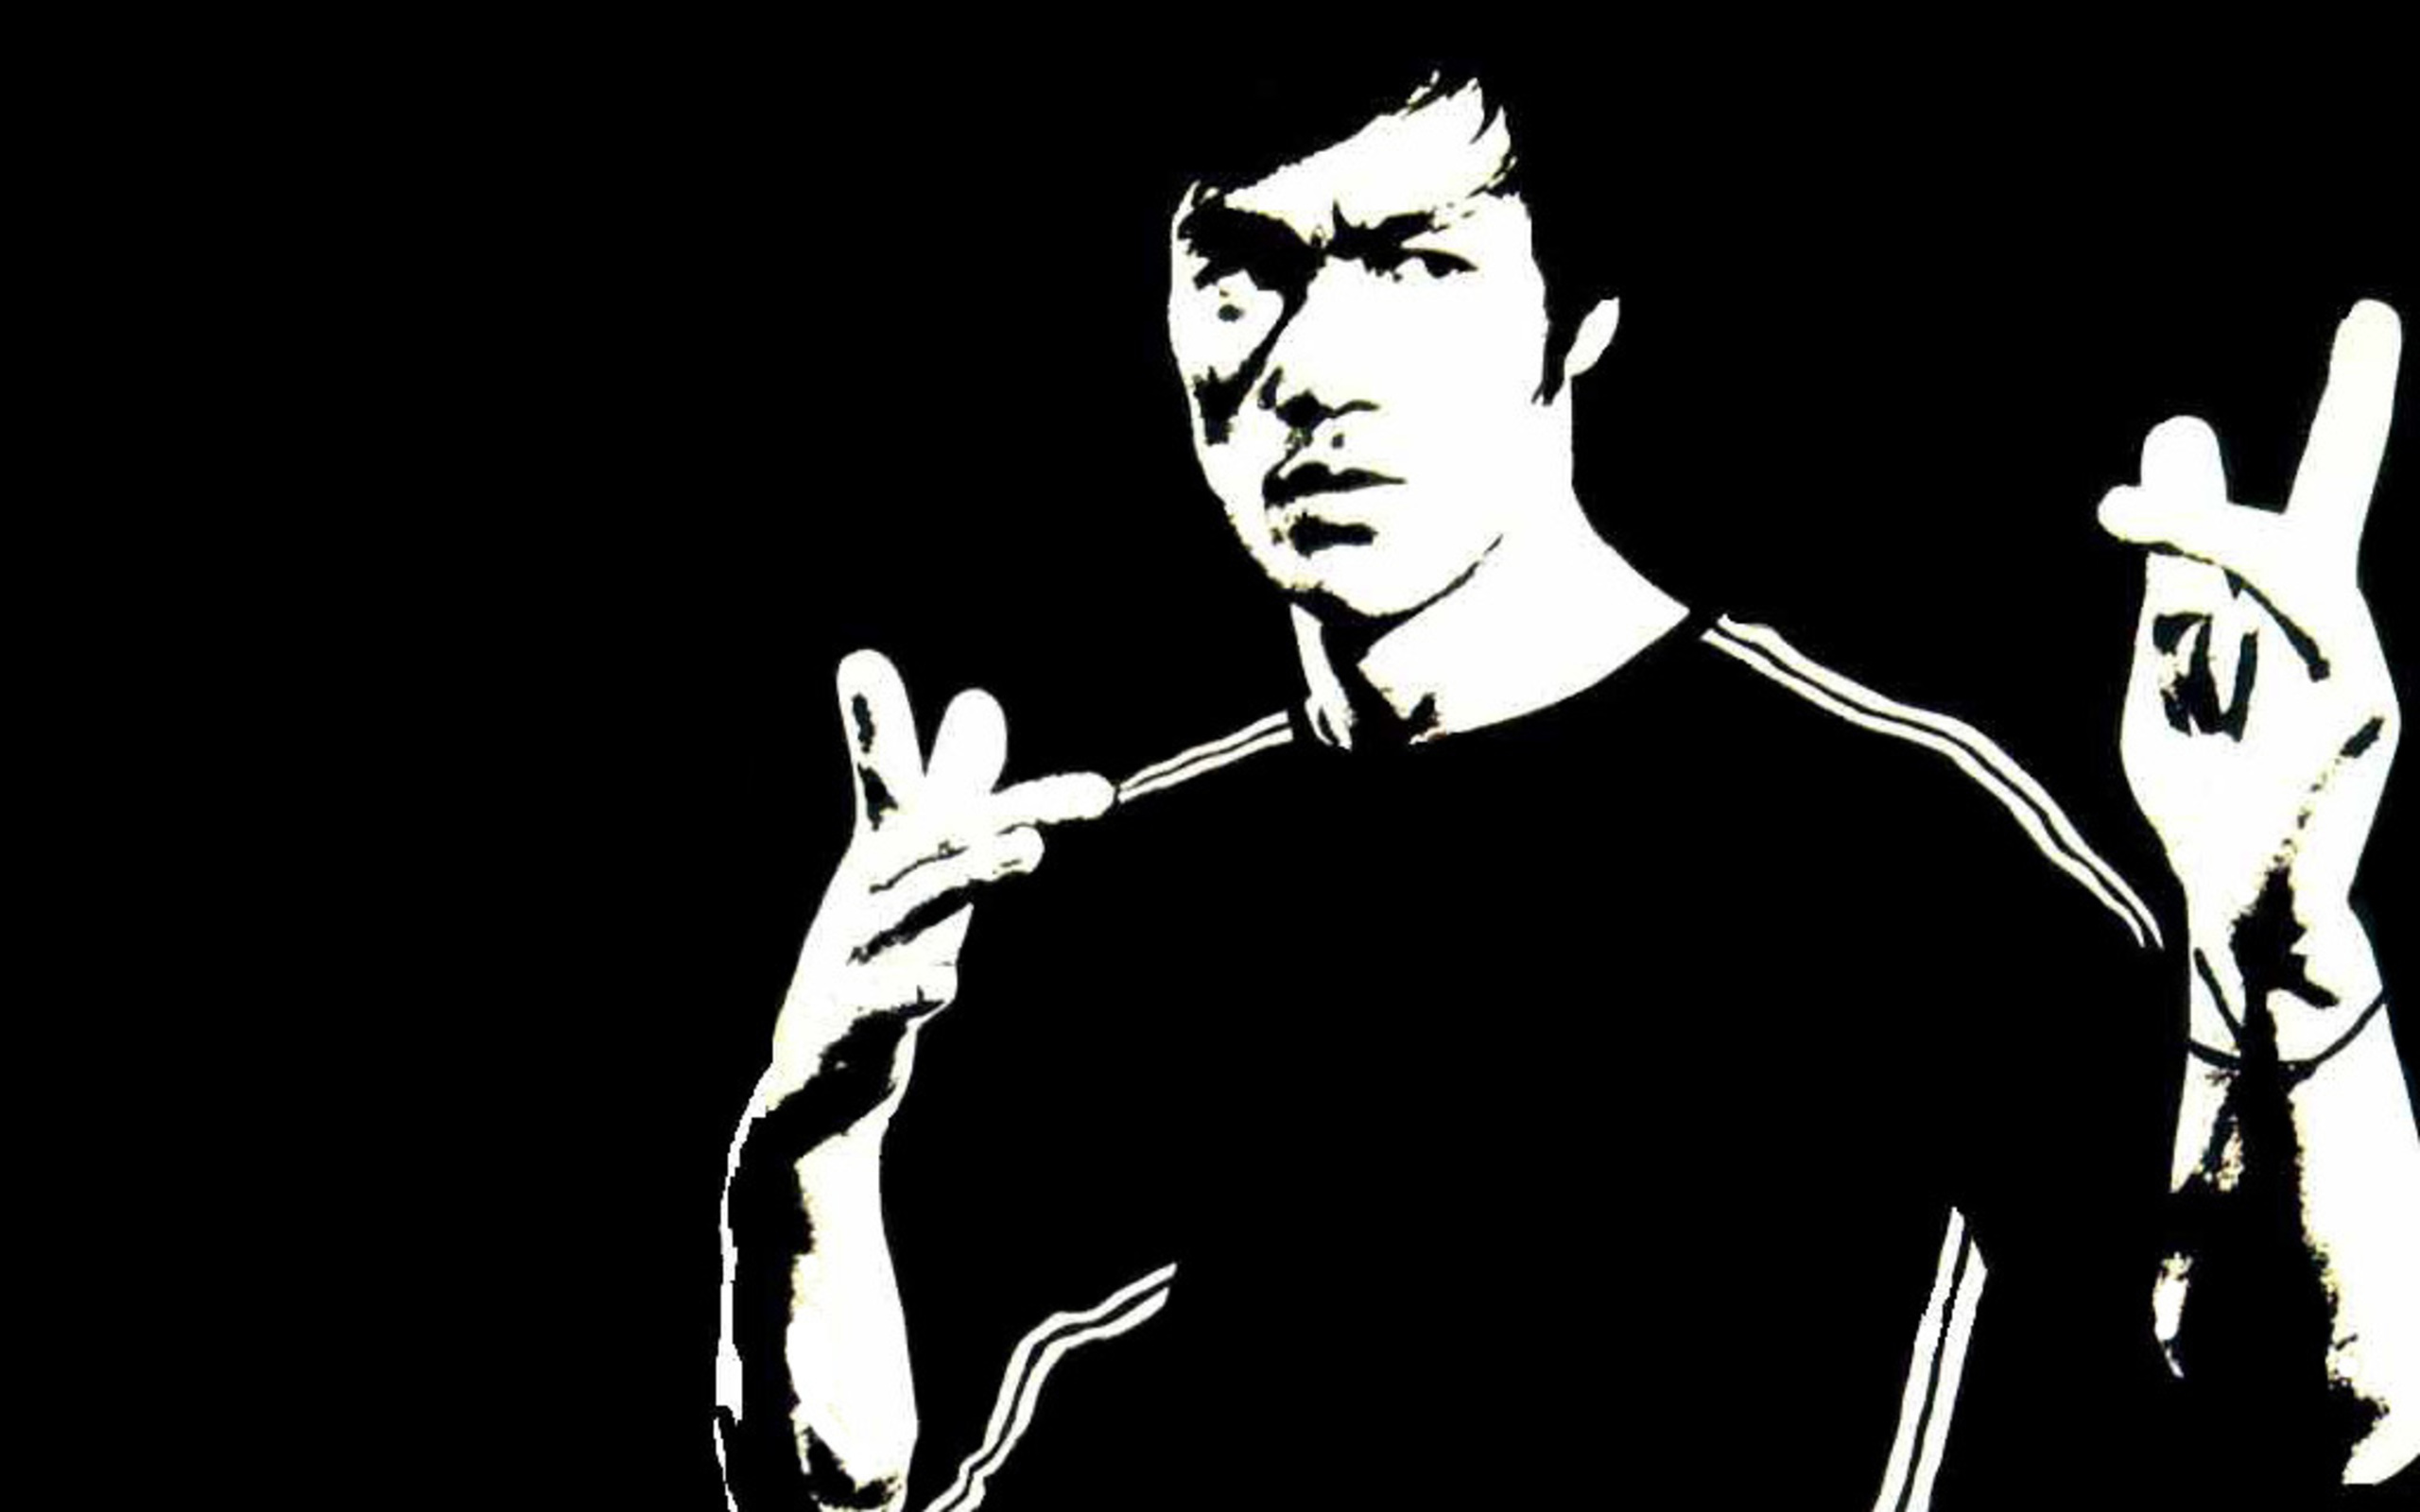 2560x1600 - Bruce Lee Wallpapers 22